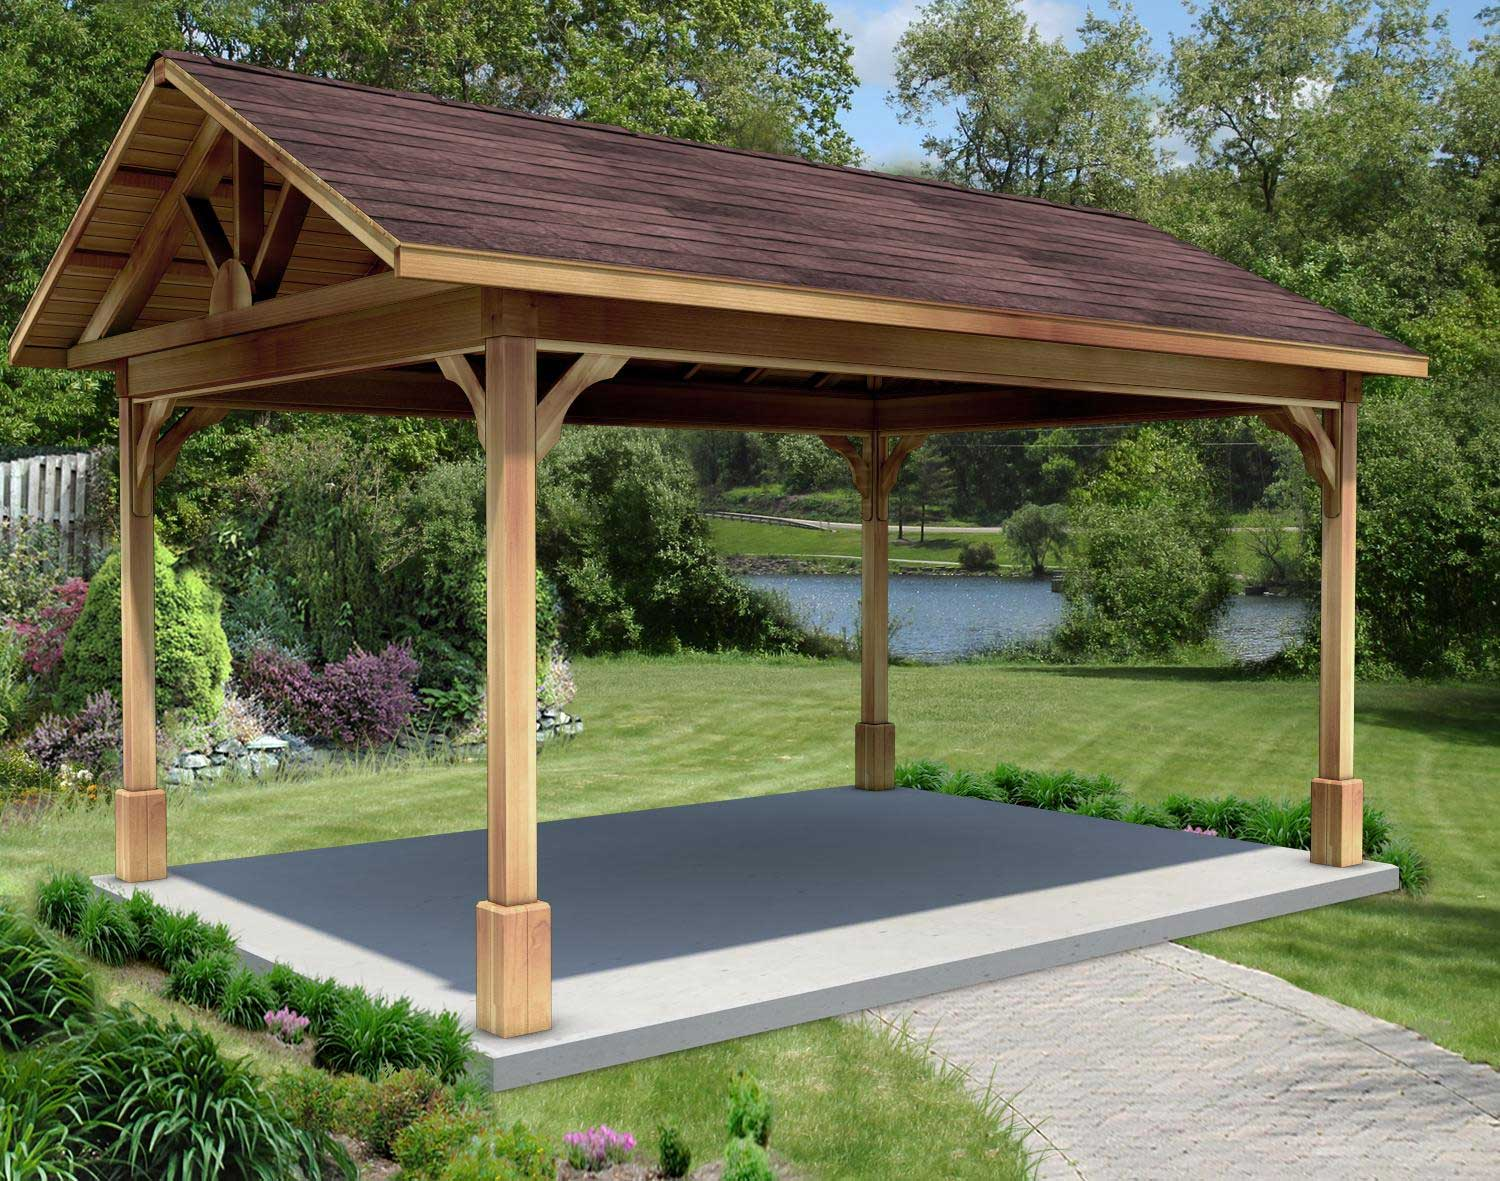 Image of: Build Rectangular Gazebo